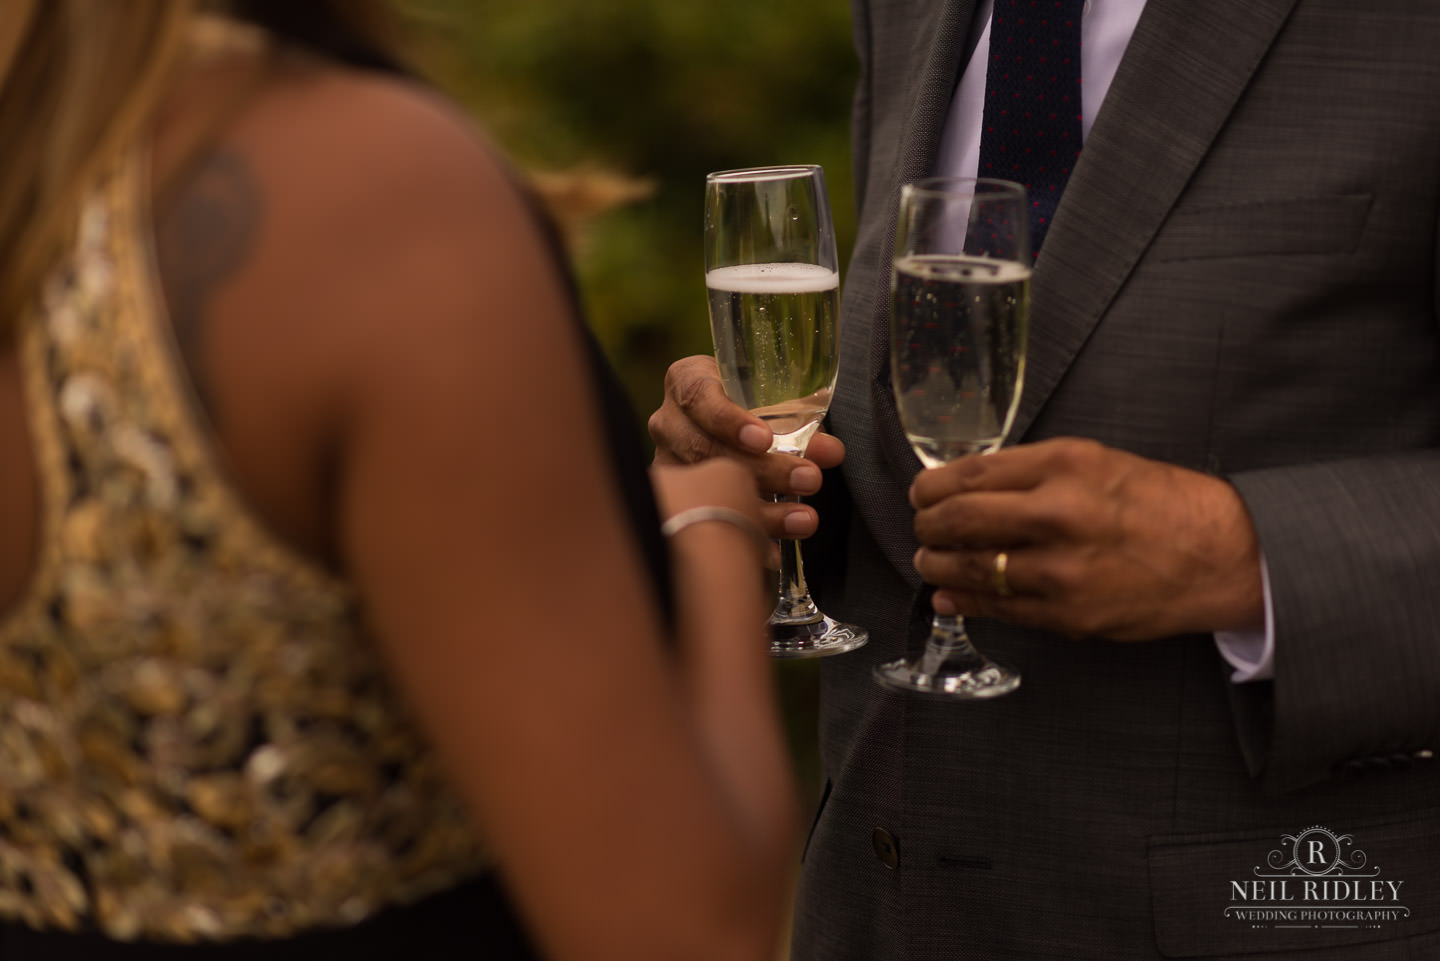 Merrydale Manor Wedding Photographer - Champagne glasses